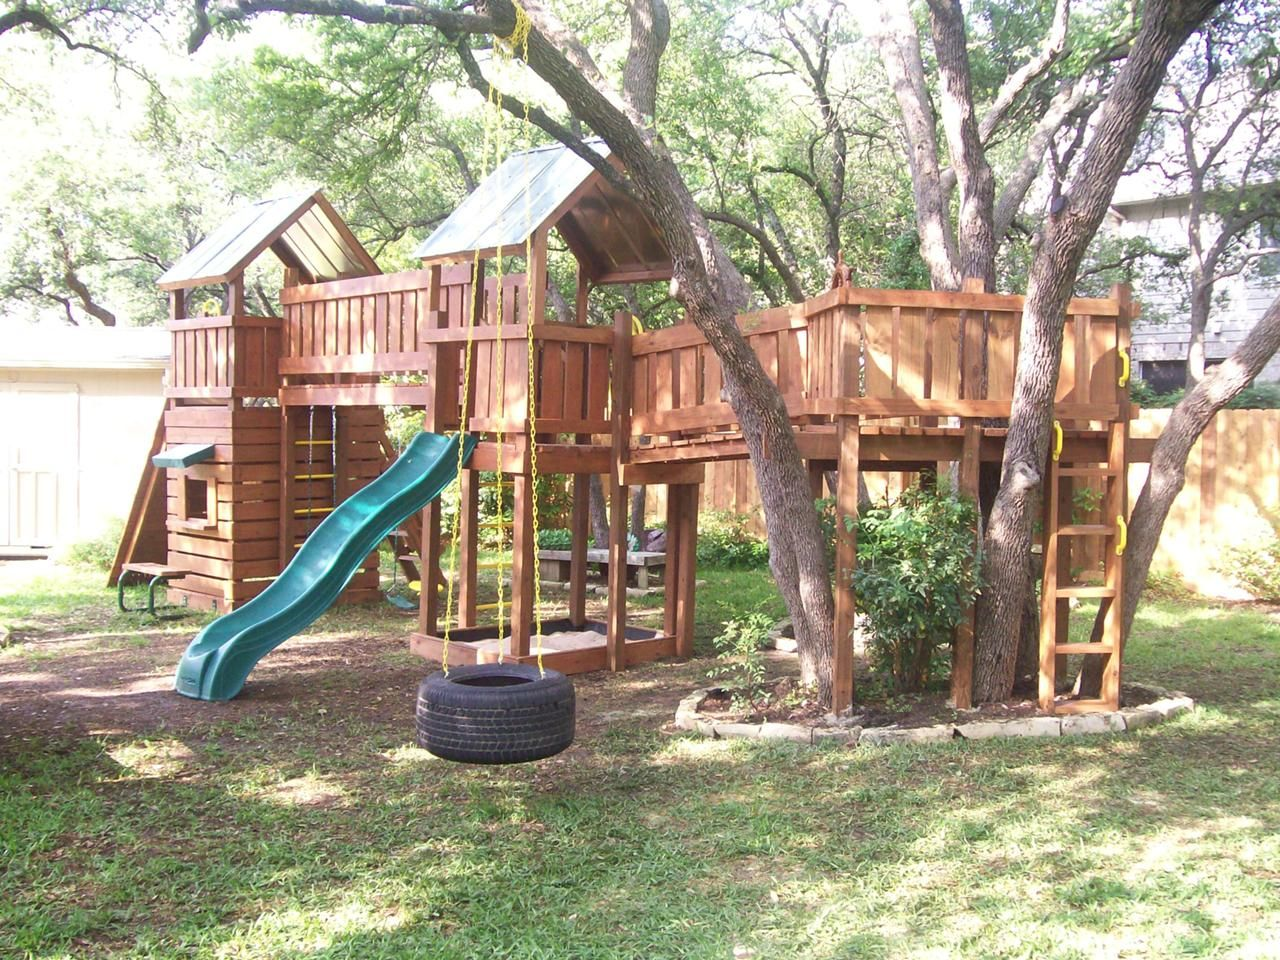 image detail for 002 kidzscapes playscapes wooden swing set playscape jungle gym for. Black Bedroom Furniture Sets. Home Design Ideas